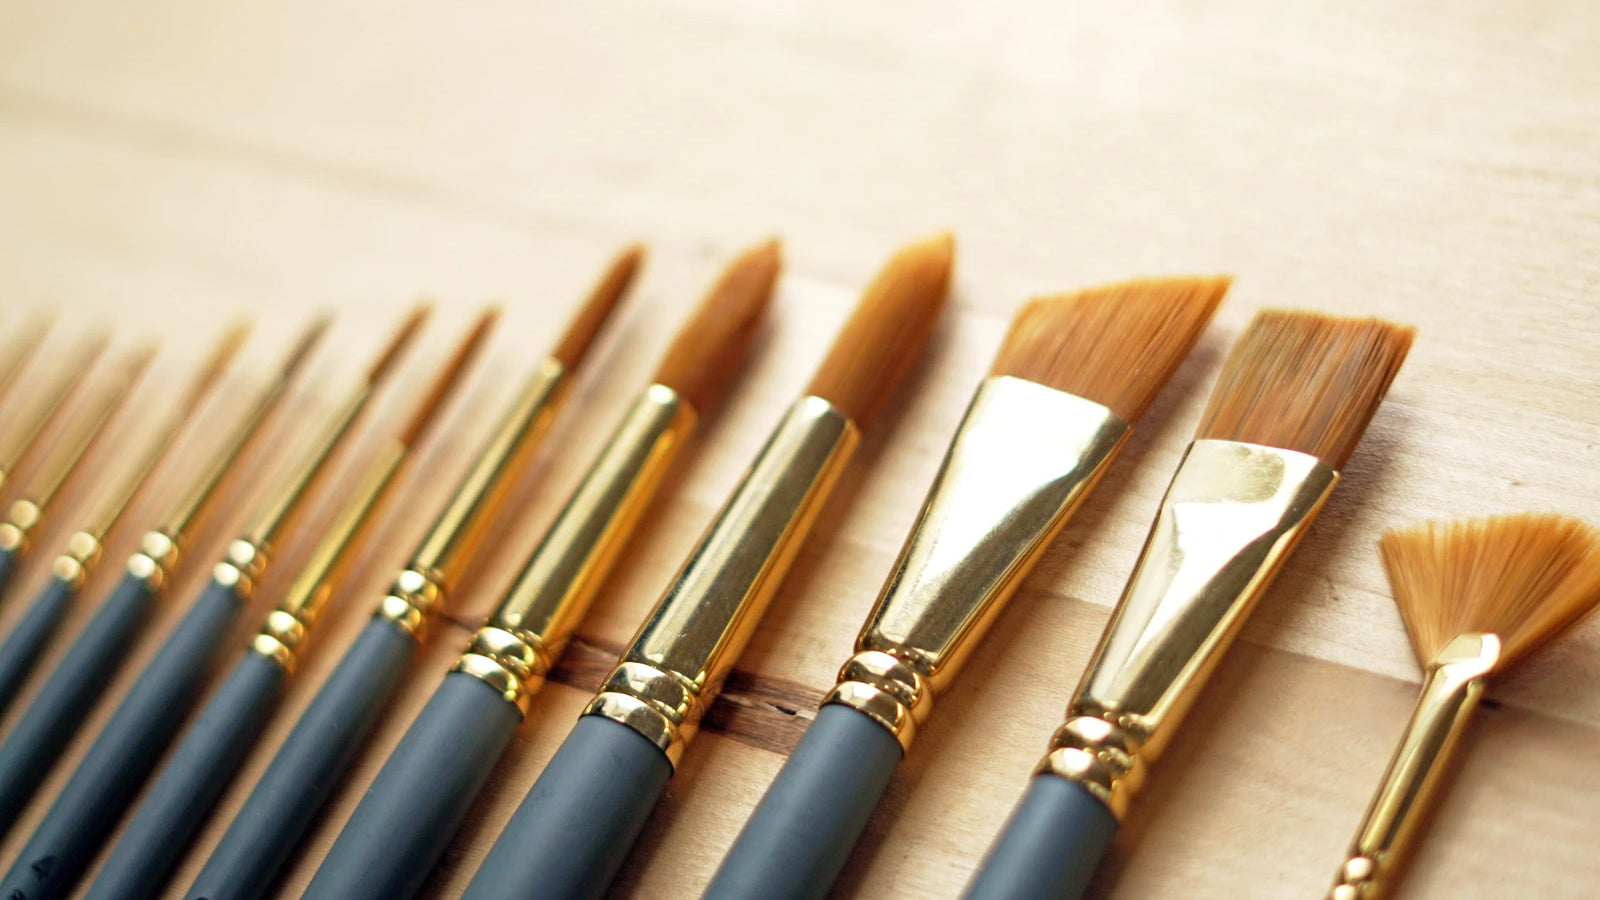 a close up of multiple paintbrushes in a row on a table